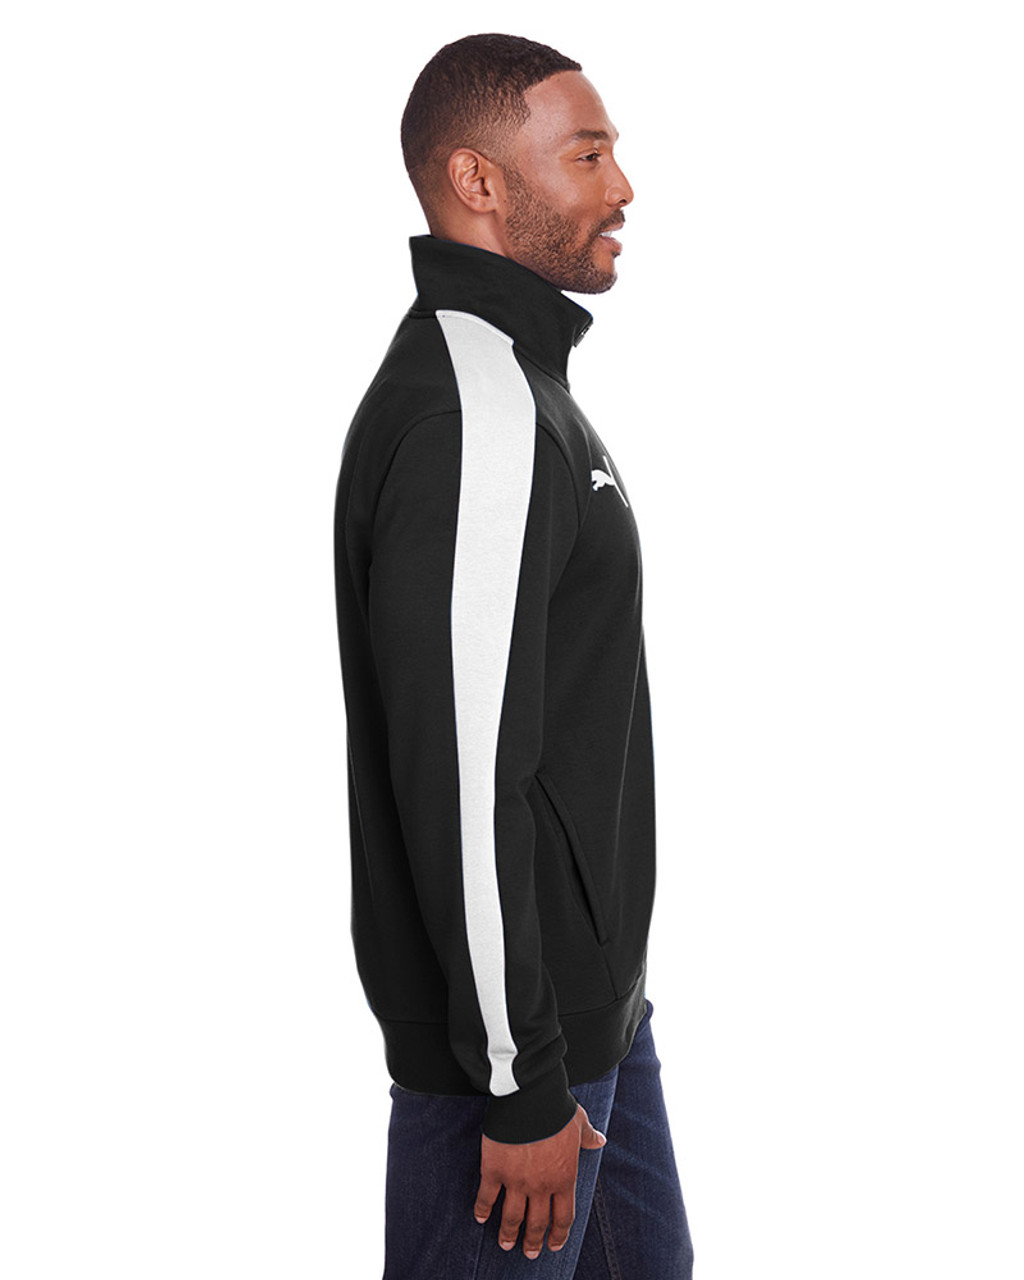 Puma Black/Puma White - side, 597021 Puma Sport Adult P48 Fleece Track Jacket | Blankclothing.ca